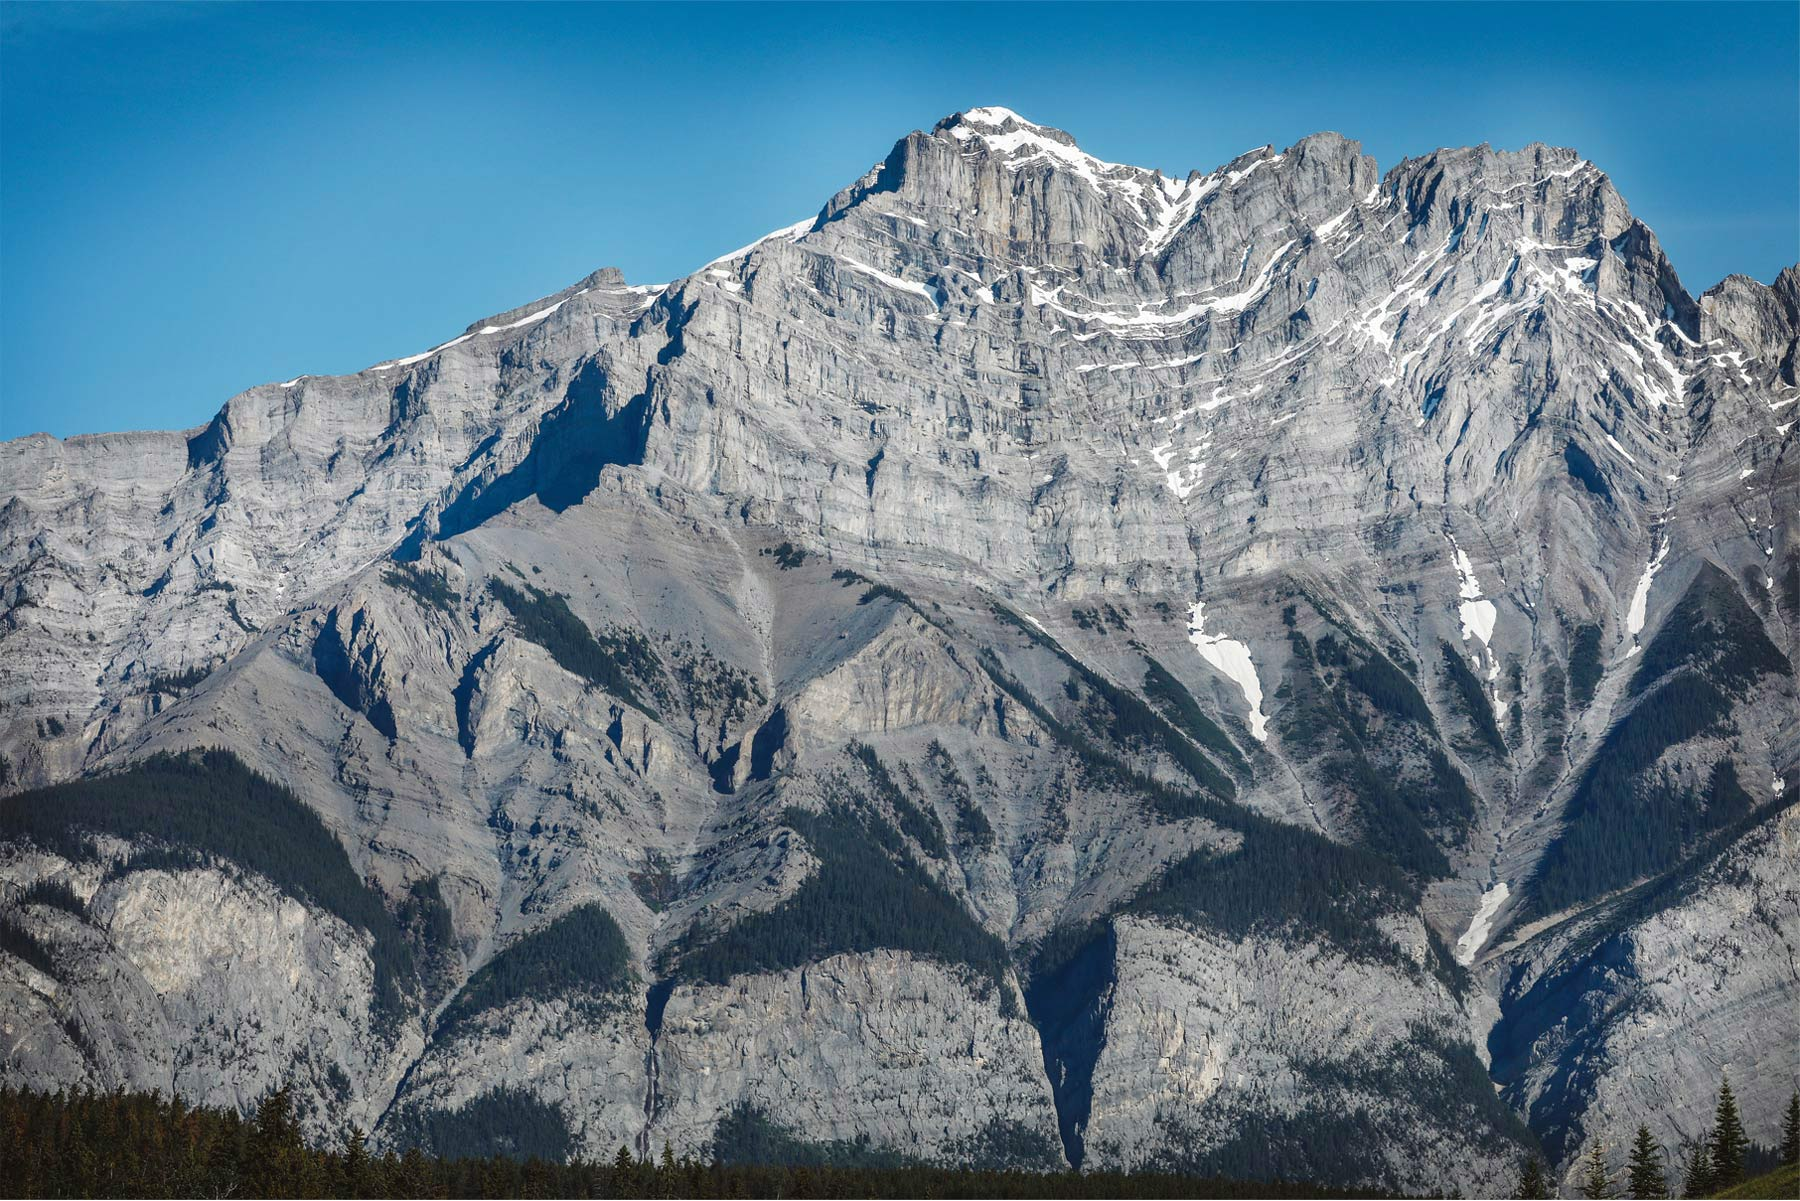 01-Banff-Canada-Engagement-Photography-by-Vick-Photography-Mountains-Lizz-and-Brady.jpg